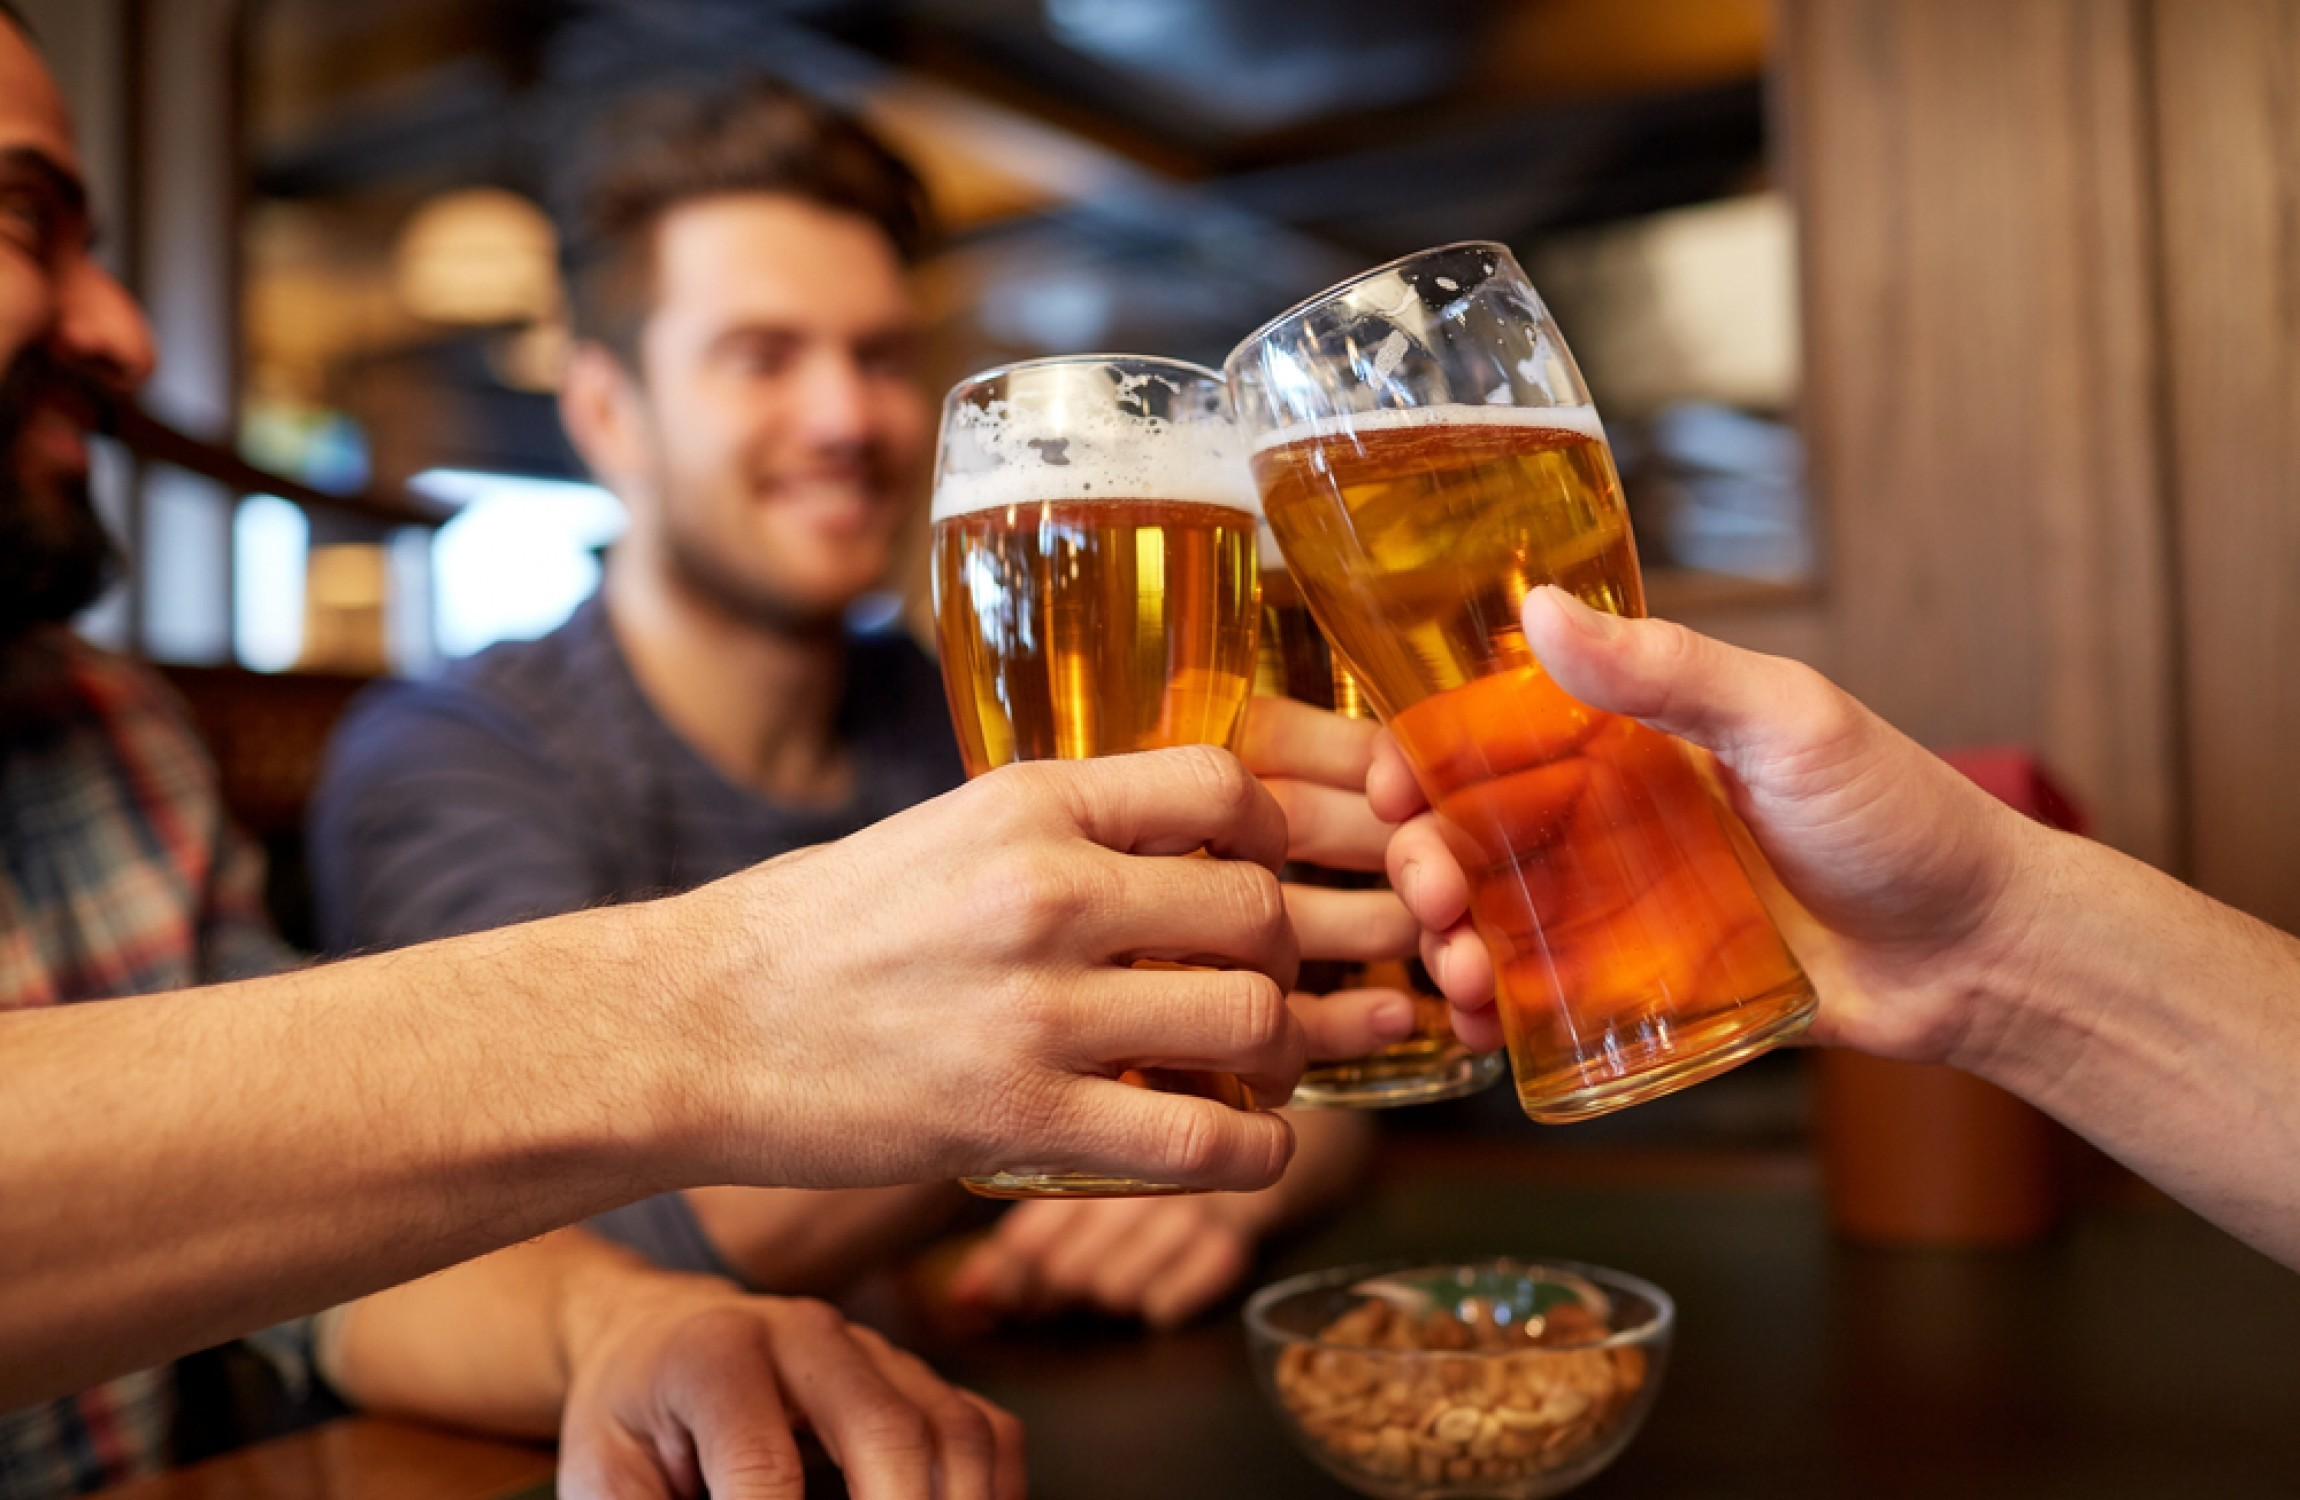 alcohol advertisements should be banned Two thirds of australians say alcohol ads should be banned from sport, according to research from the salvation army reported by the drum last week tim lindsay, ceo of d&ad, sees things.